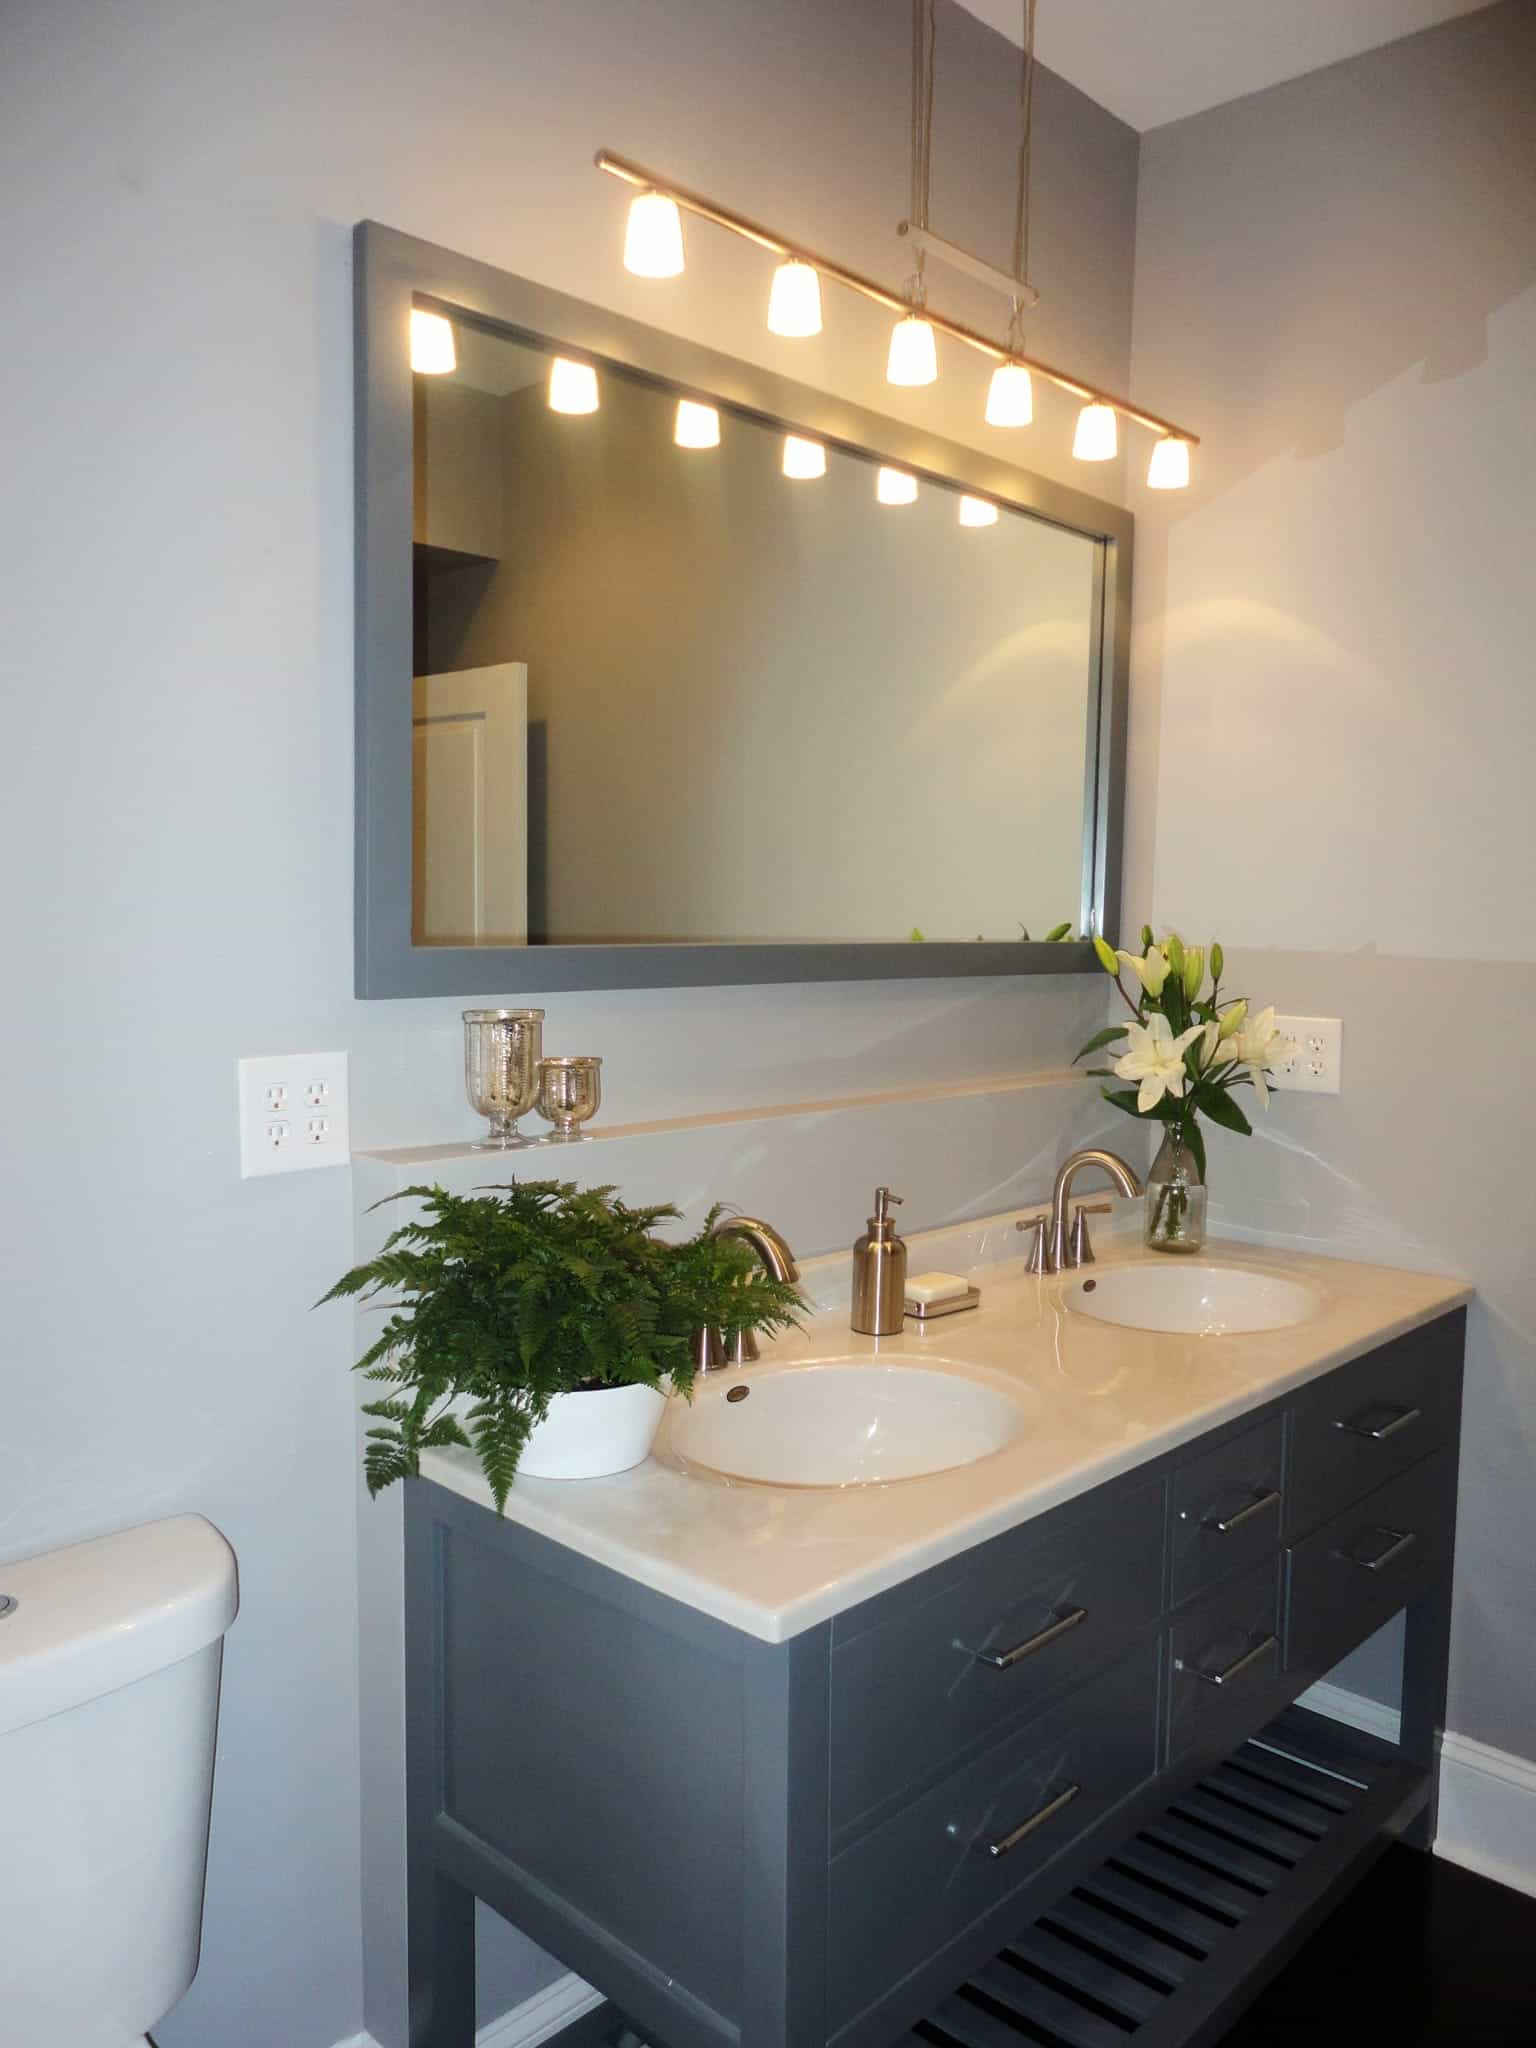 Large Vanity With Mirror And Pendant Light In Remodeled Upstairs Bathroom (Image 12 of 20)